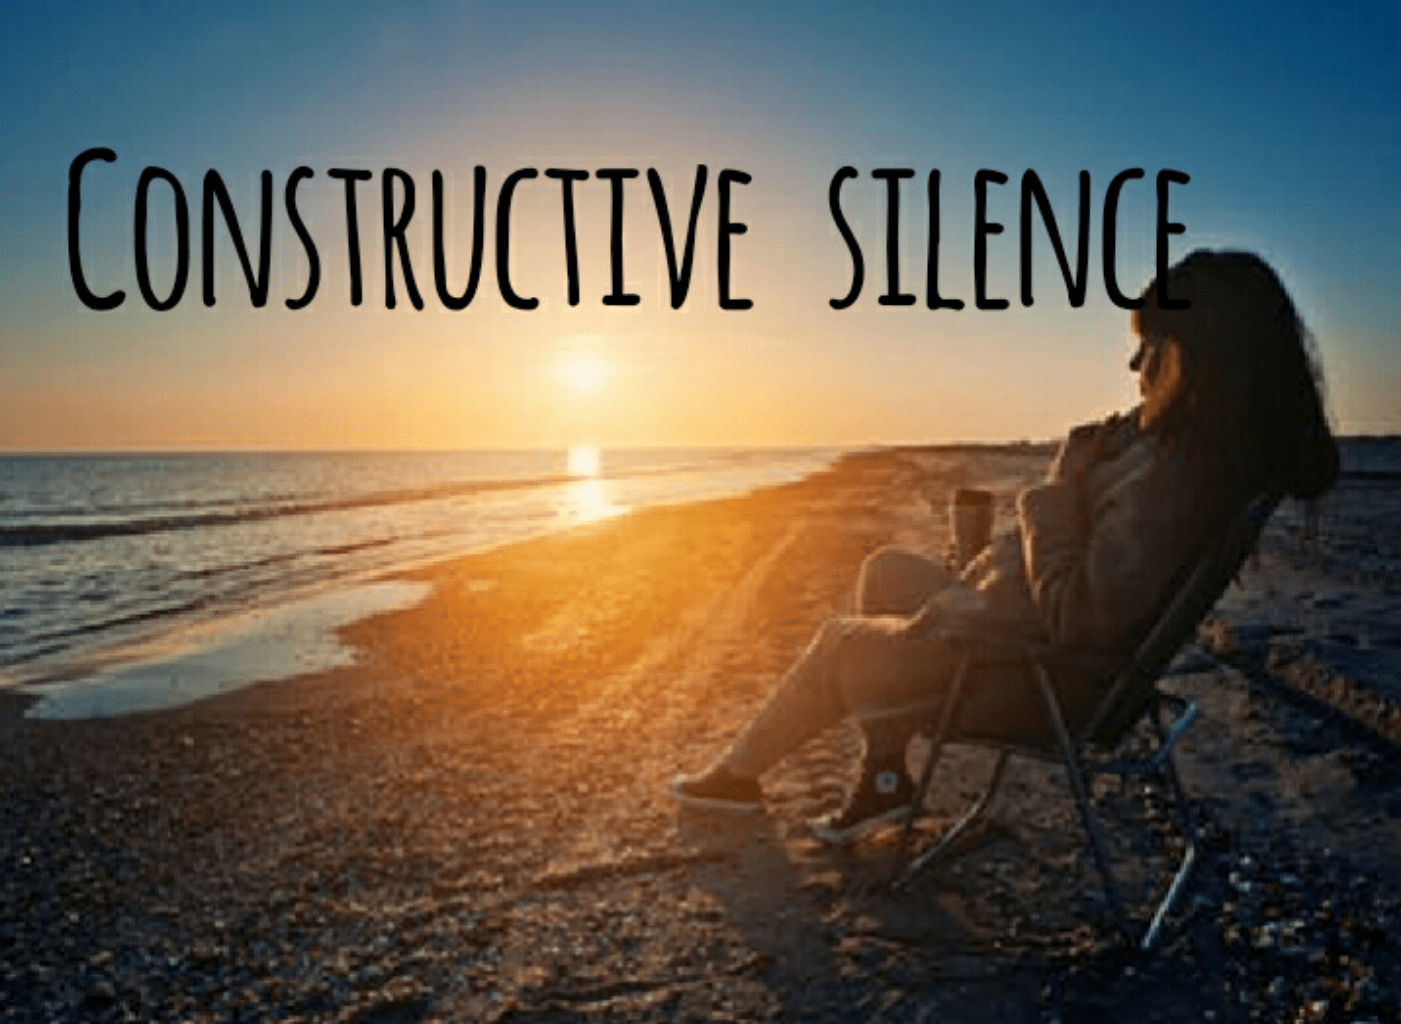 How To Use Constructive Silence To Get Along With Others